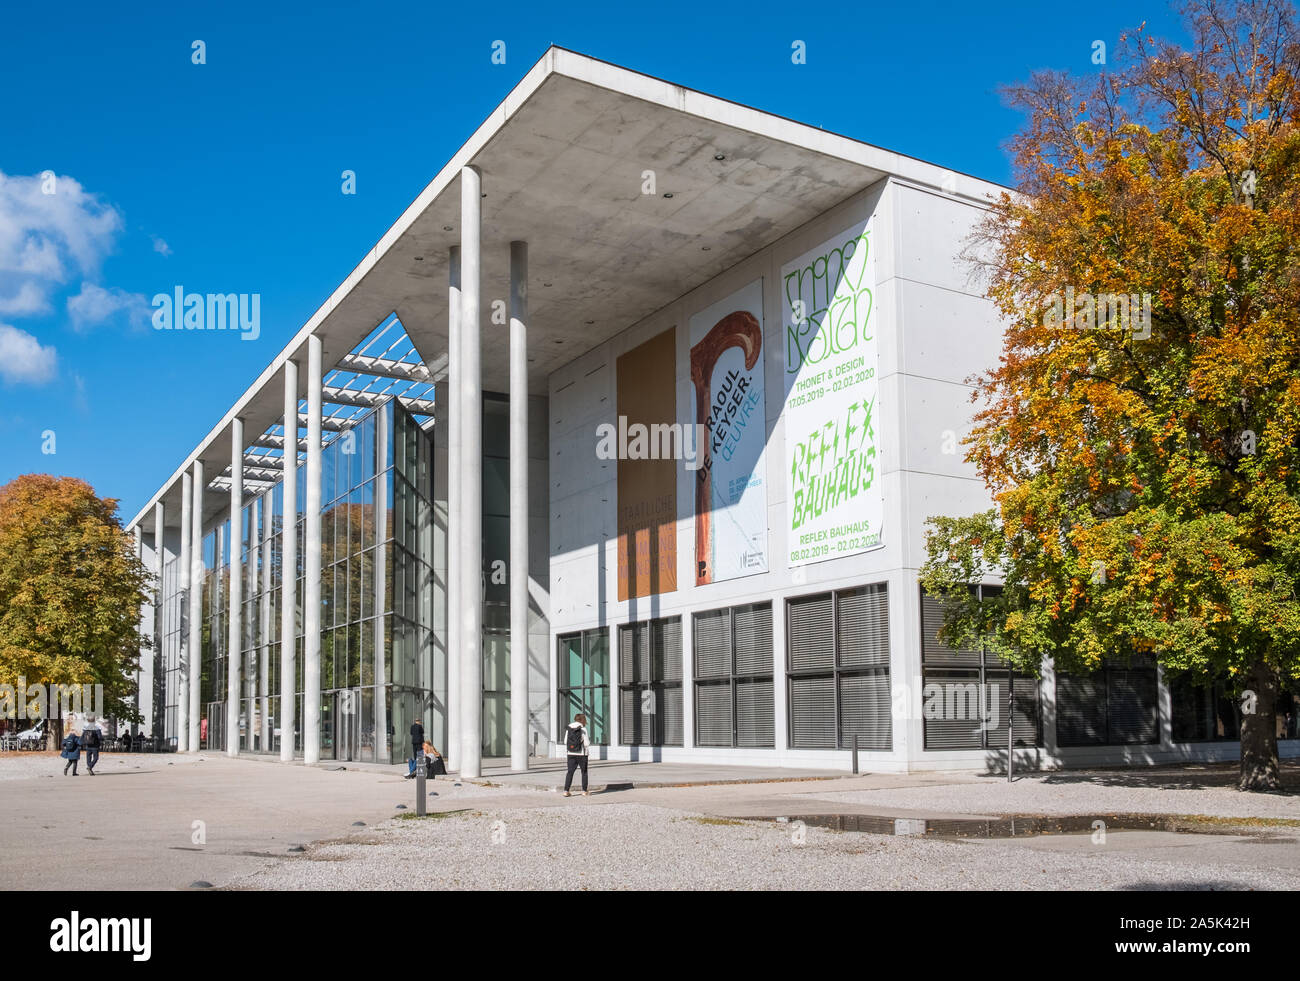 Exterior of Pinakothek Der Moderne museum, Kunstareal, Munich, Bavaria, Germany Stock Photo